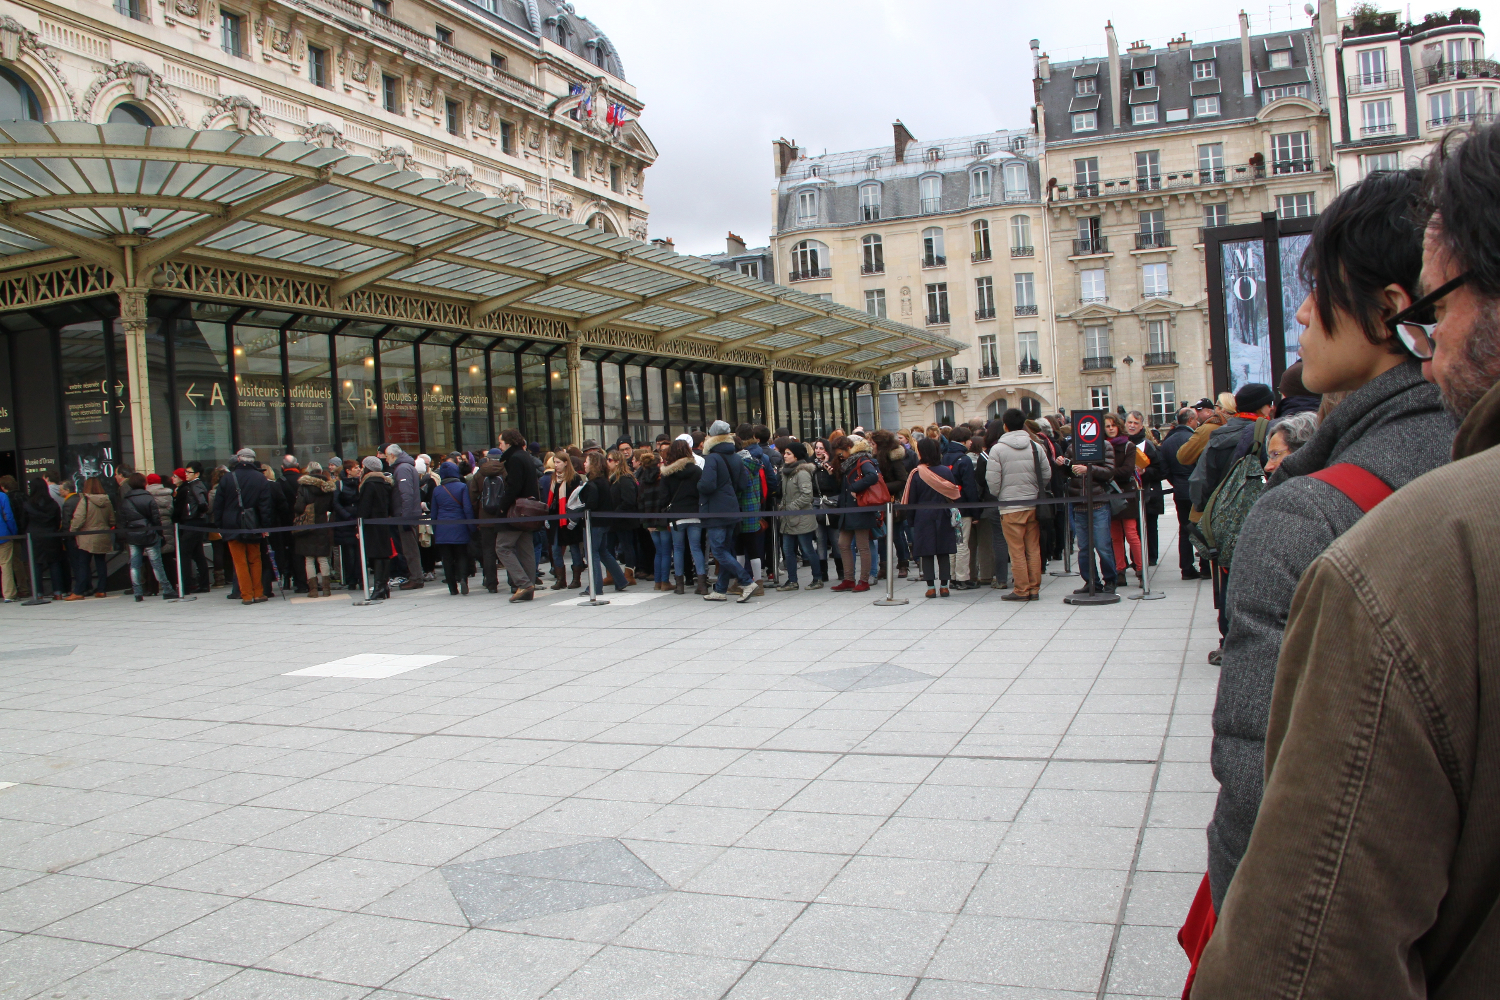 Waiting in line at Musee d'Orsay, Paris